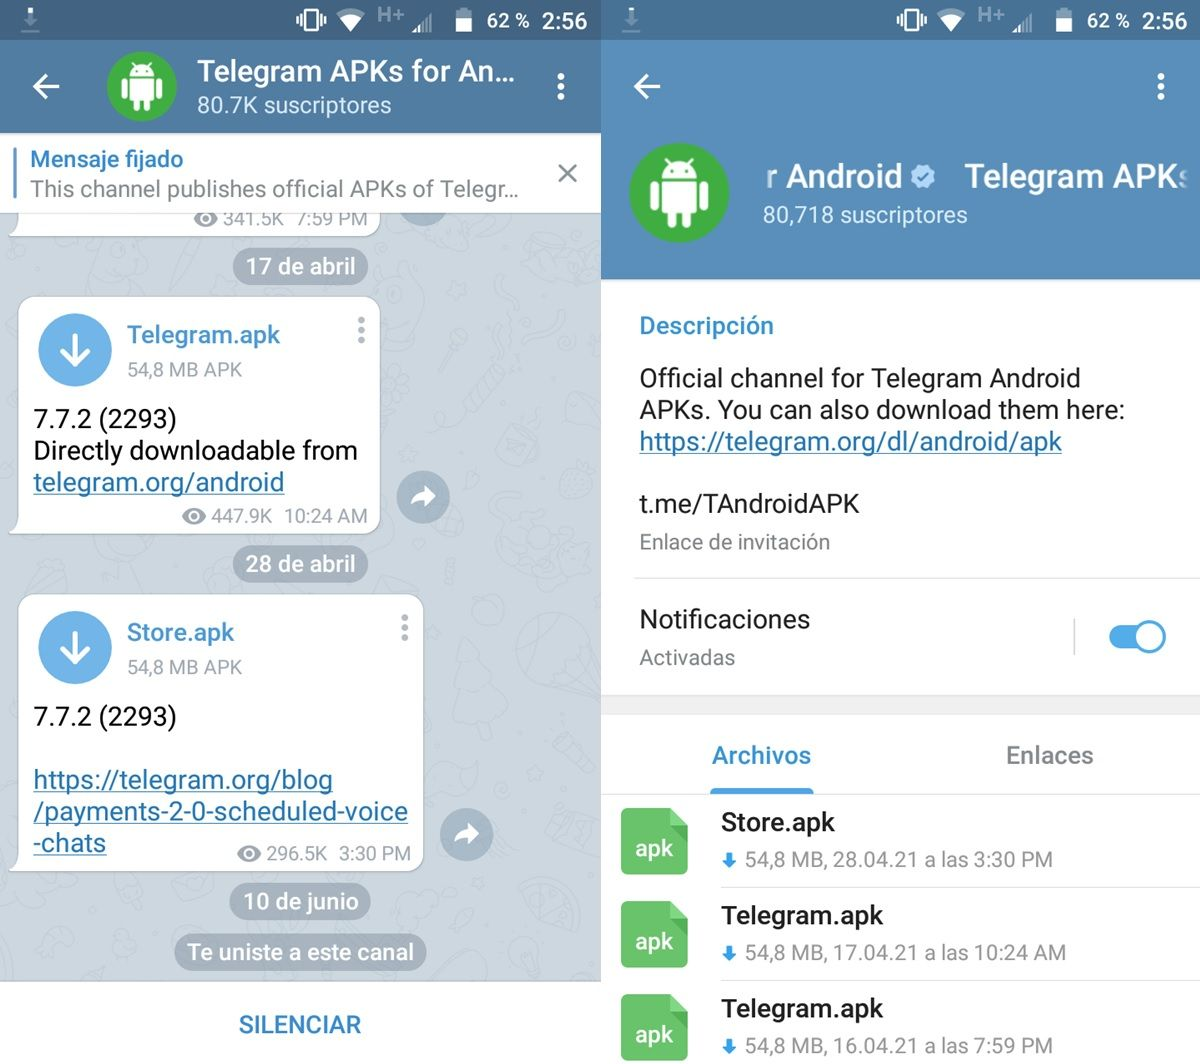 canal oficial telegram apks for android